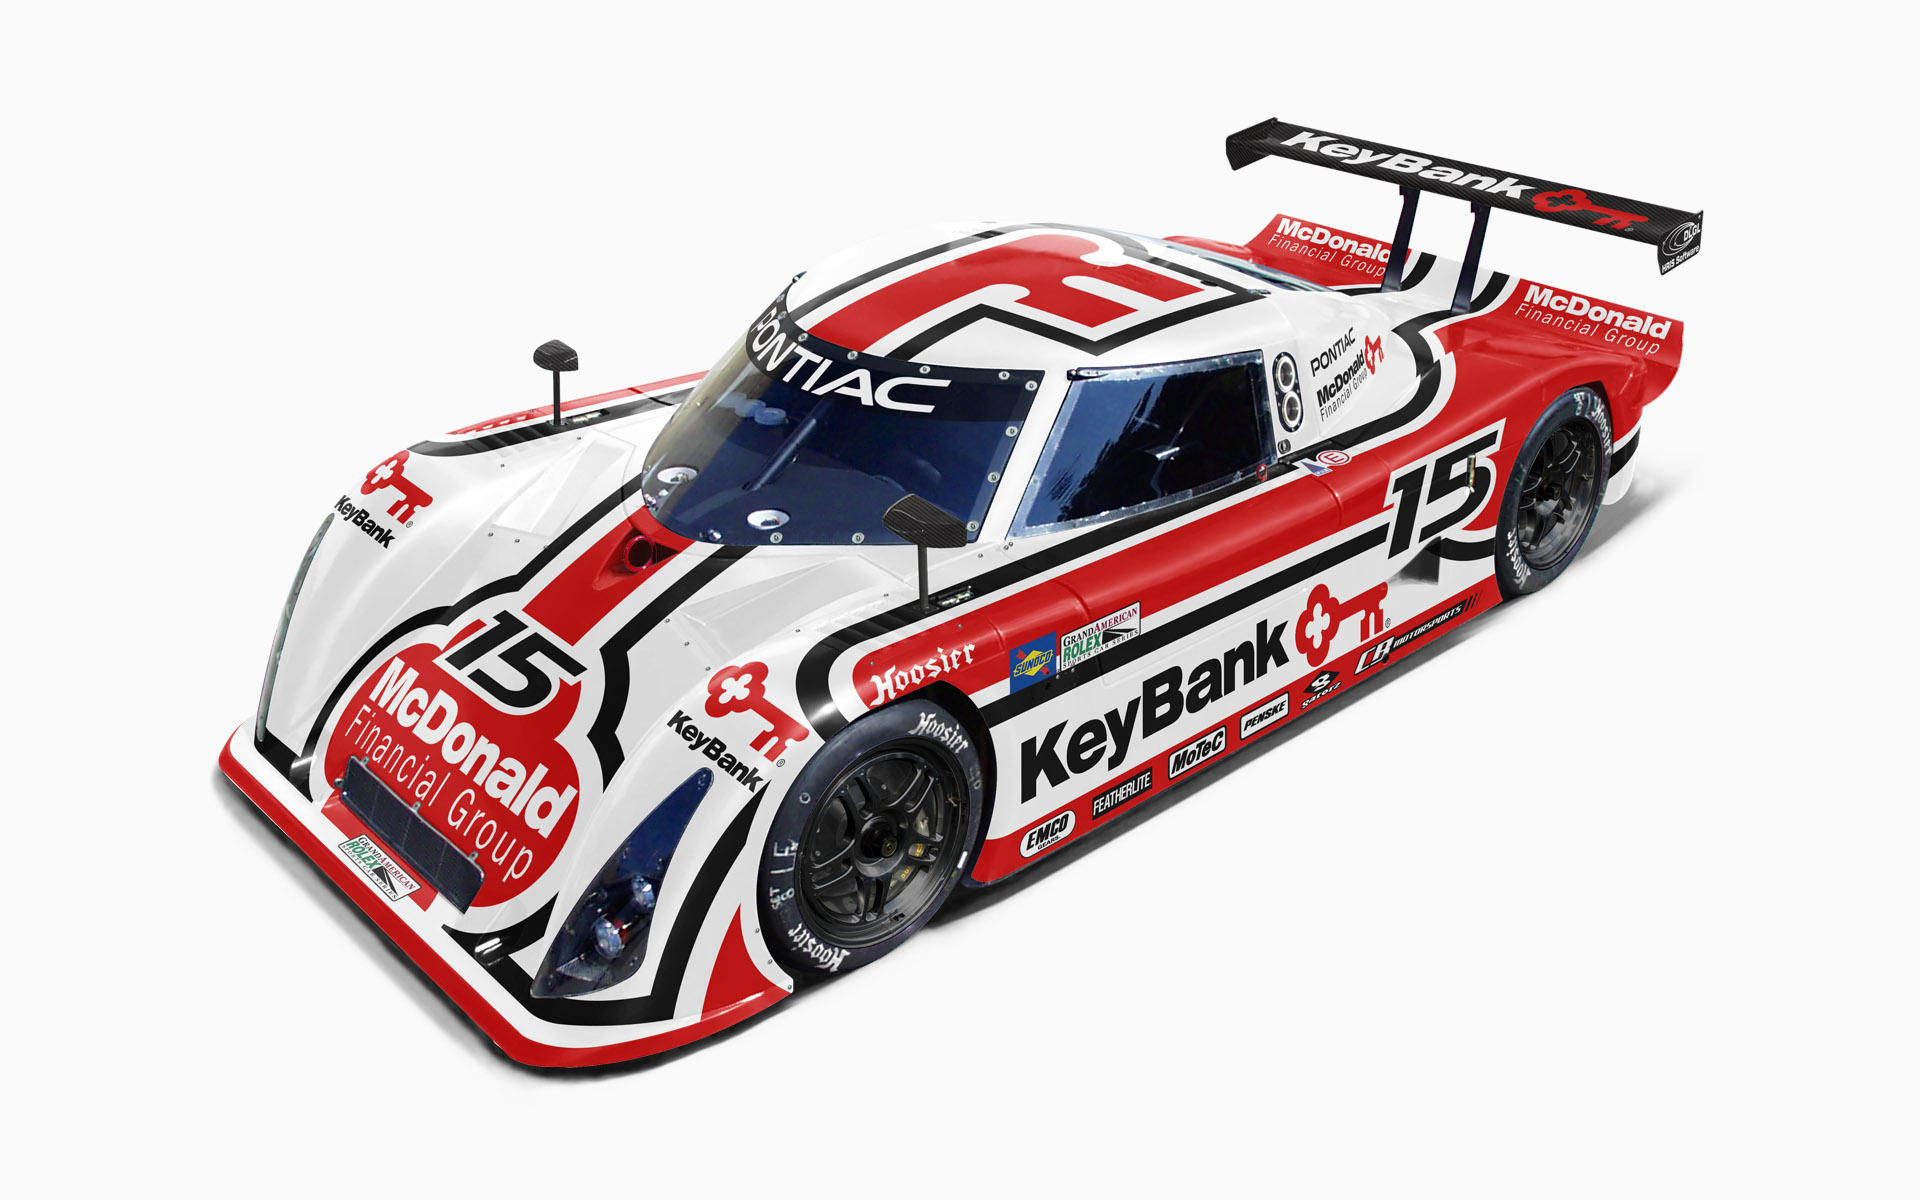 CB Motorsports Keybank Pontiac Riley MKXI Daytona Prototype Visualization